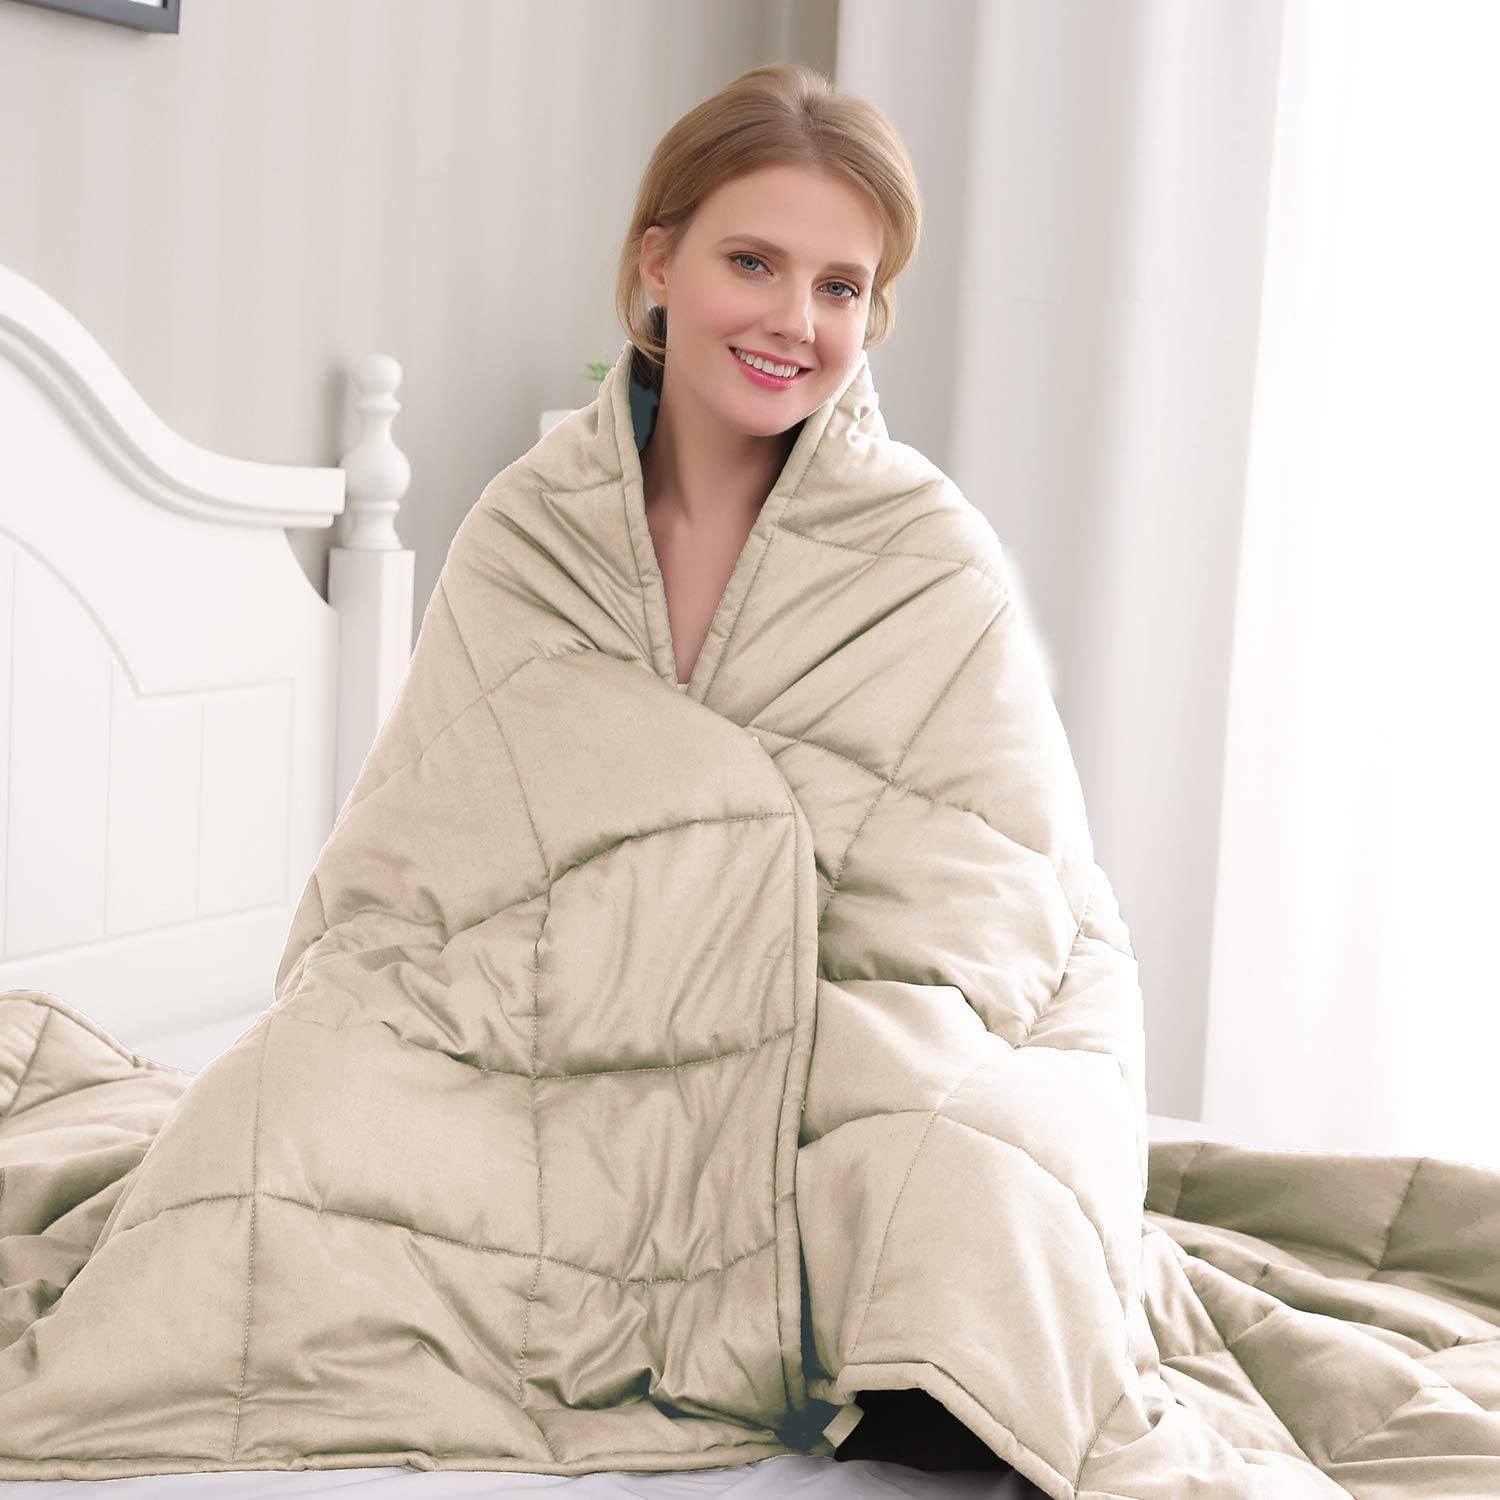 Amy Garden Weighted Blanket (48x72 Inch,15 lbs for 120-180 lbs Individual, Taupe) | Adults Heavy Blanket